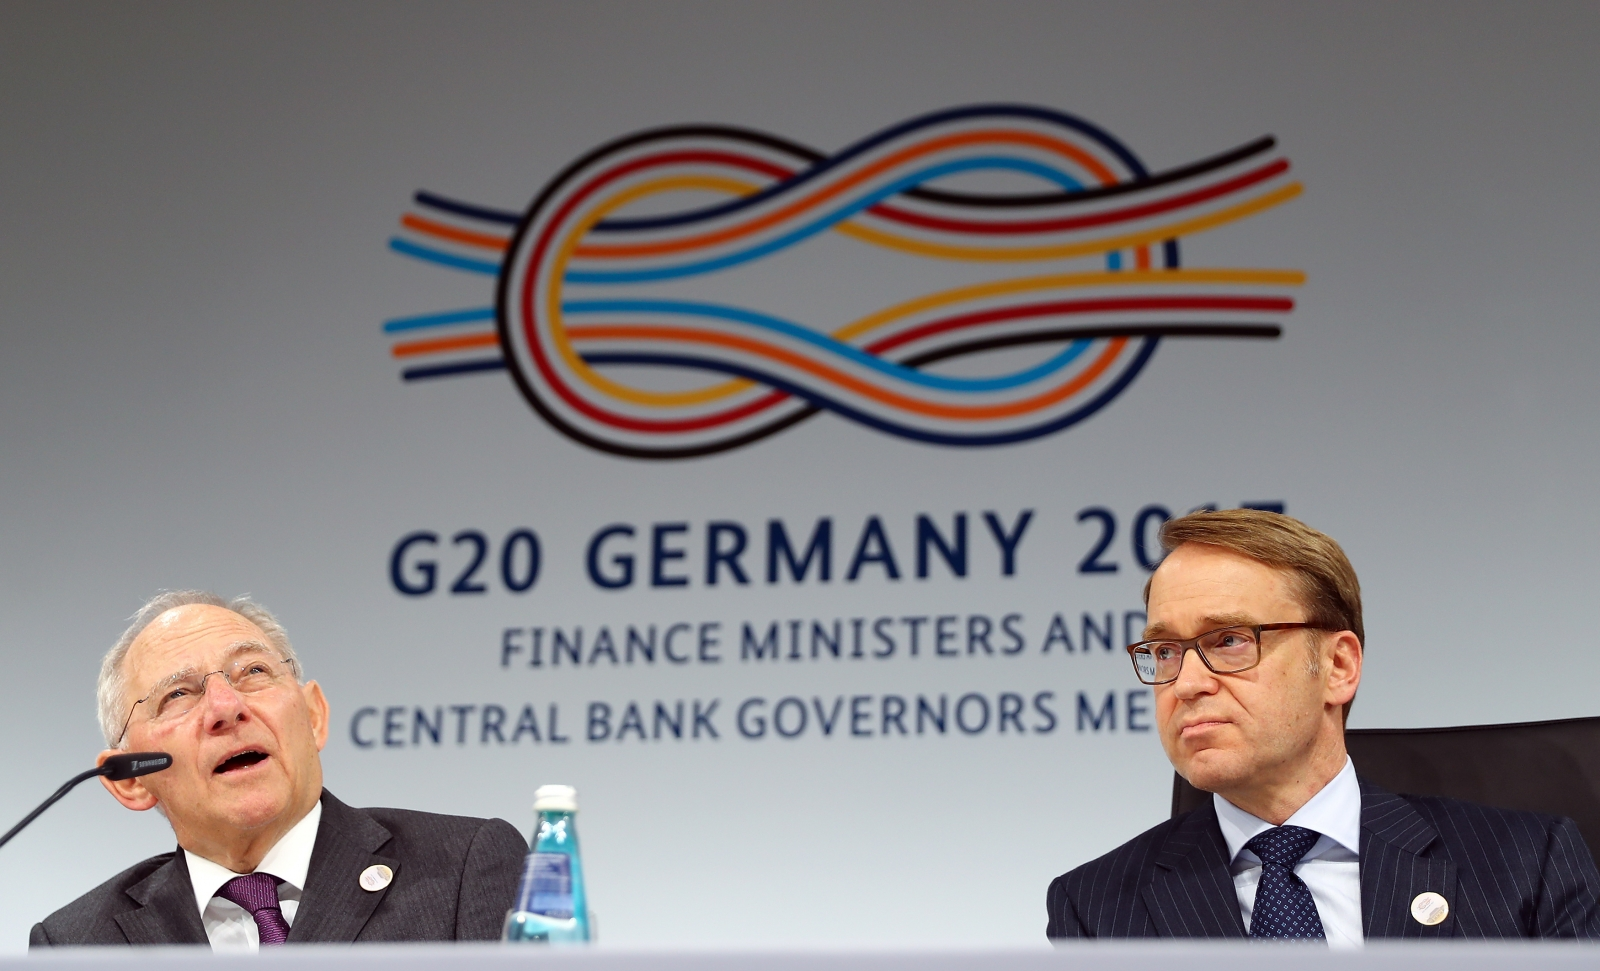 G20 meeting in Baden-Baden